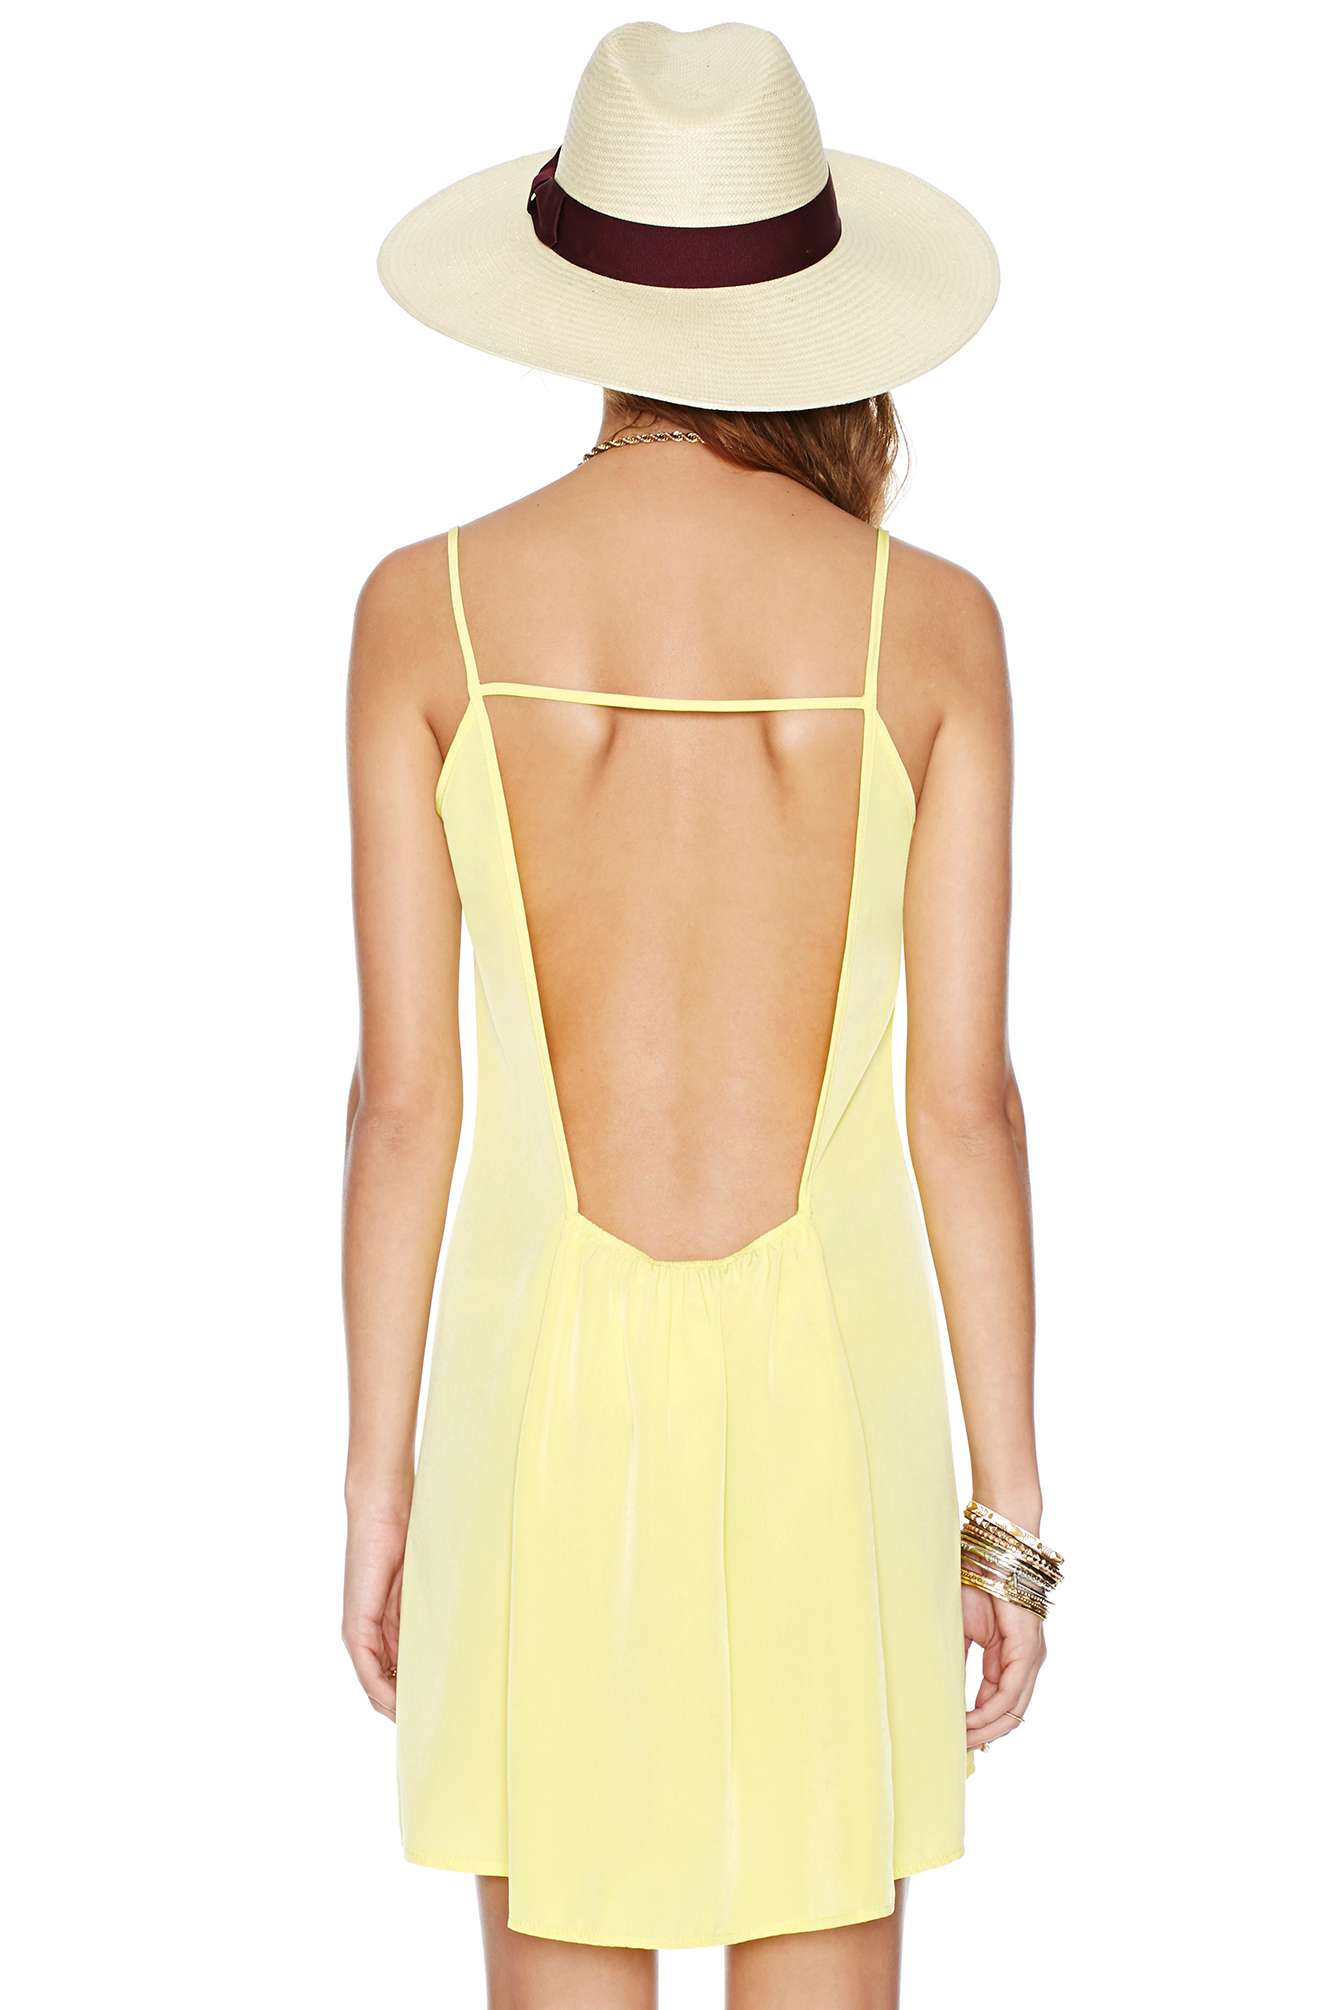 Yellow Deep V-neckline and Square Cutout Back Dress - Sheinside.com